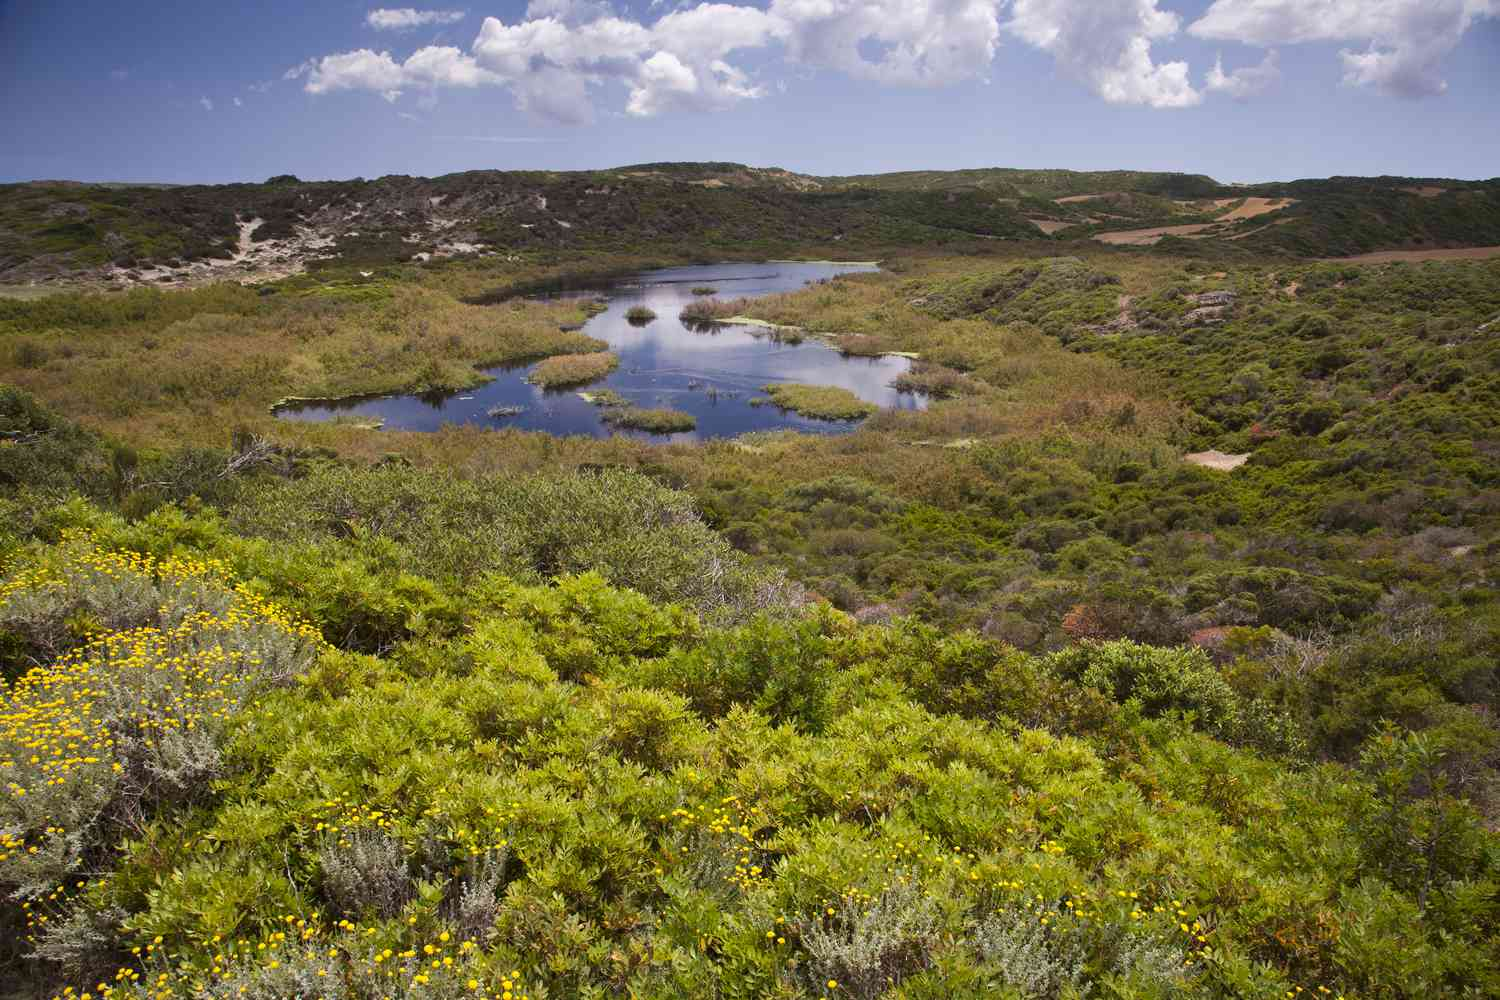 View of S'Albufera National Park on the island of Menorca